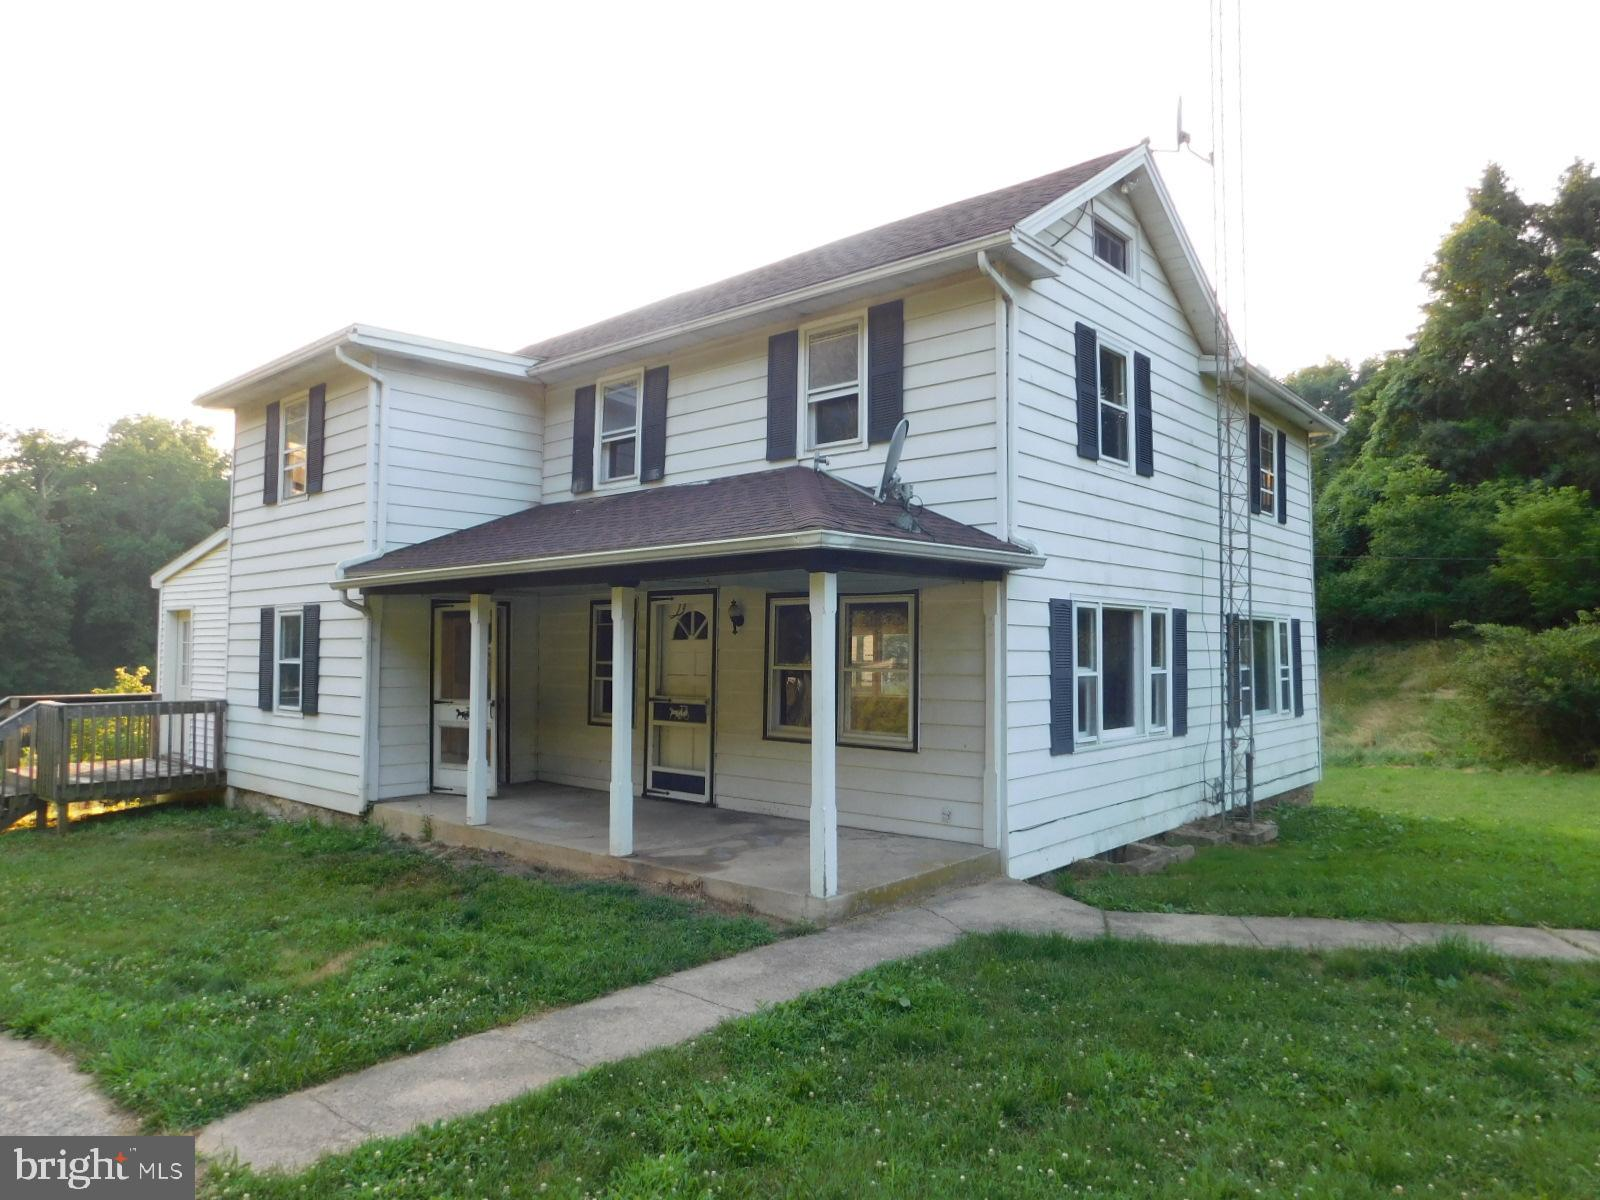 1971 HOLTWOOD ROAD, HOLTWOOD, PA 17532